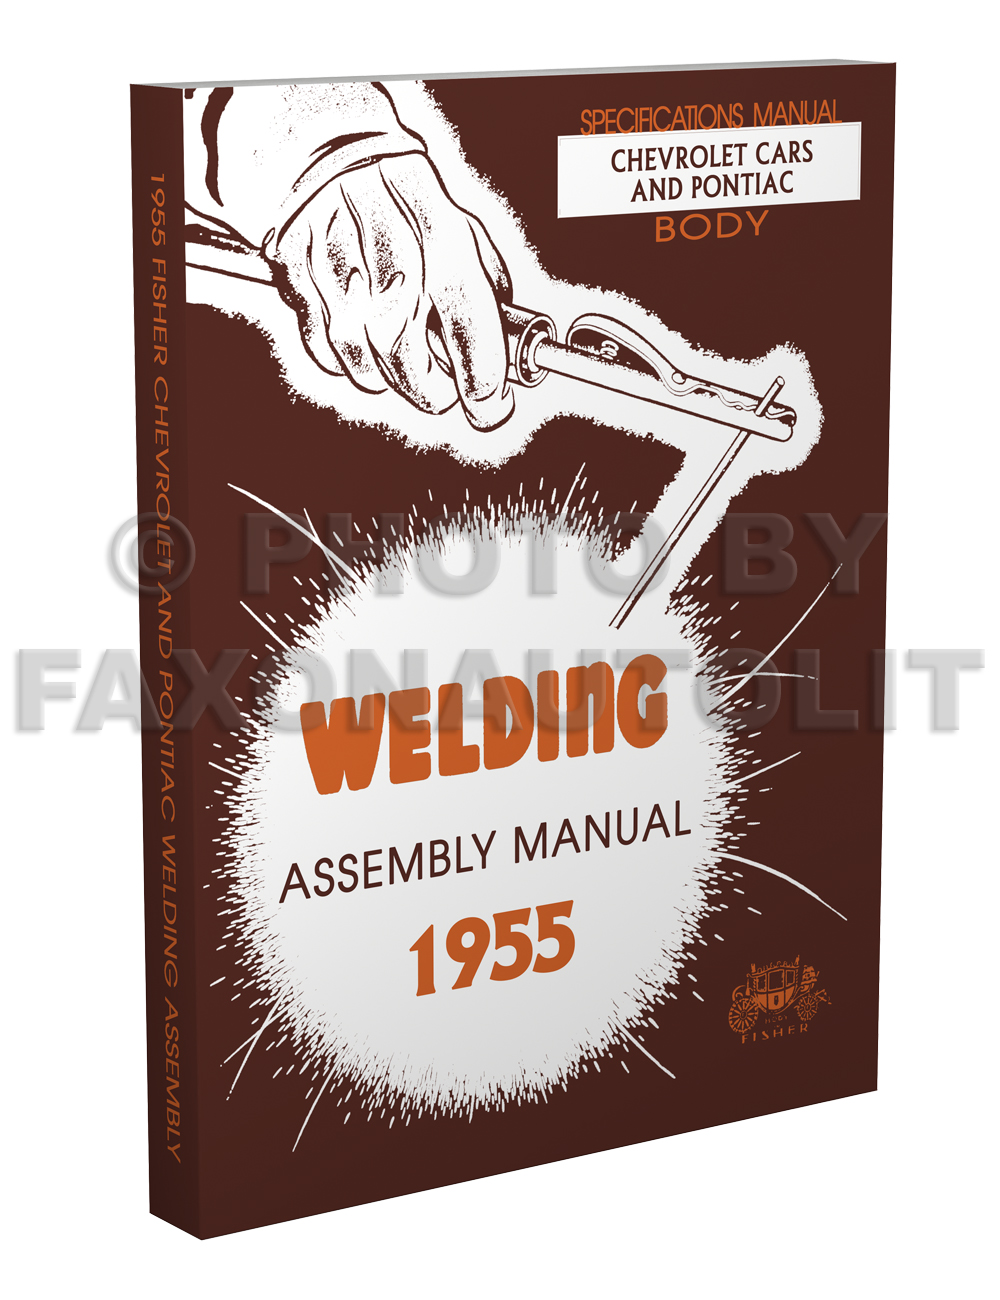 1955 Chevrolet and Pontiac Fisher Body Welding Assembly Manual Reprint